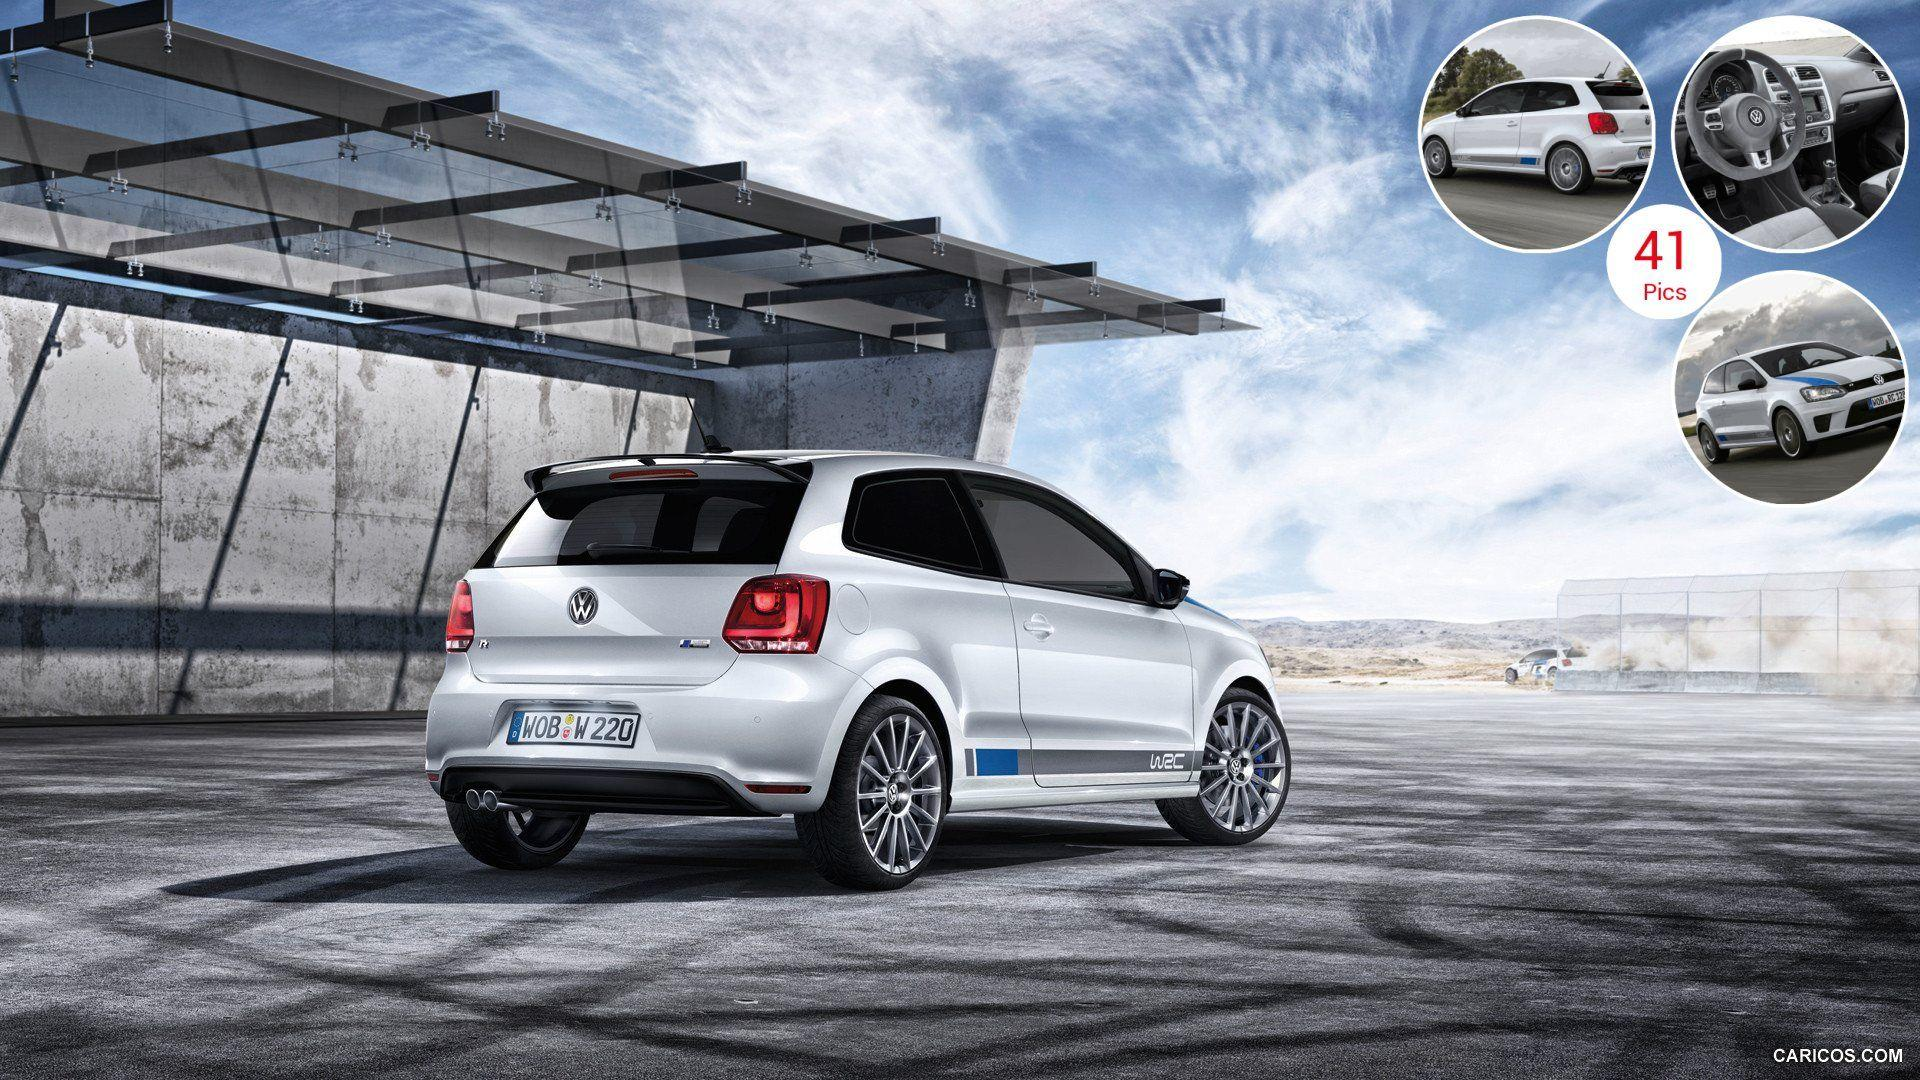 2013 Volkswagen Polo R WRC - Rear | HD Wallpaper #36